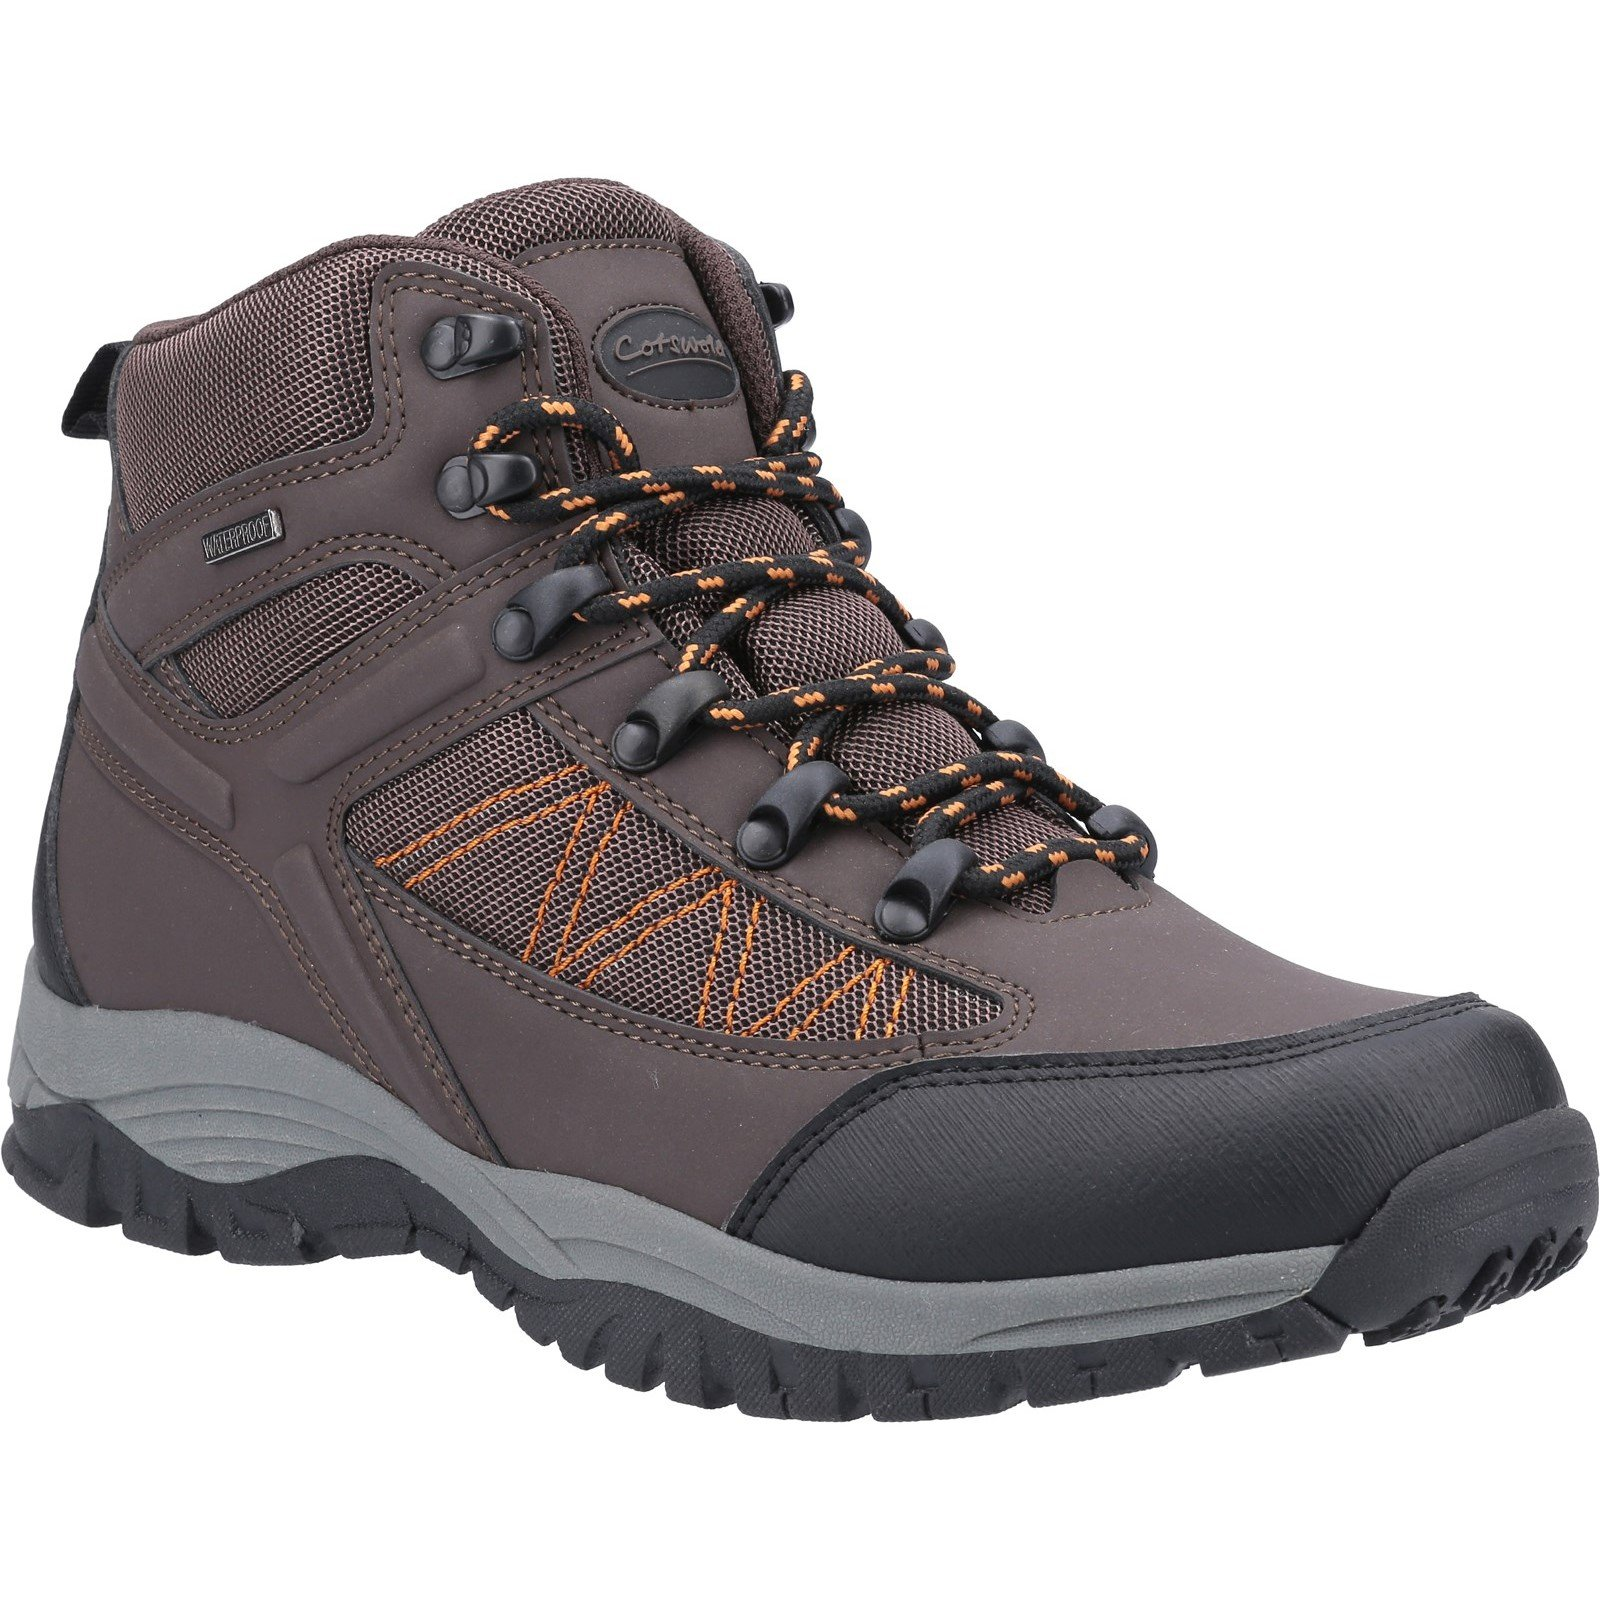 Cotswold Men's Maisemore Hiking Boot Brown 32985 - Brown 10